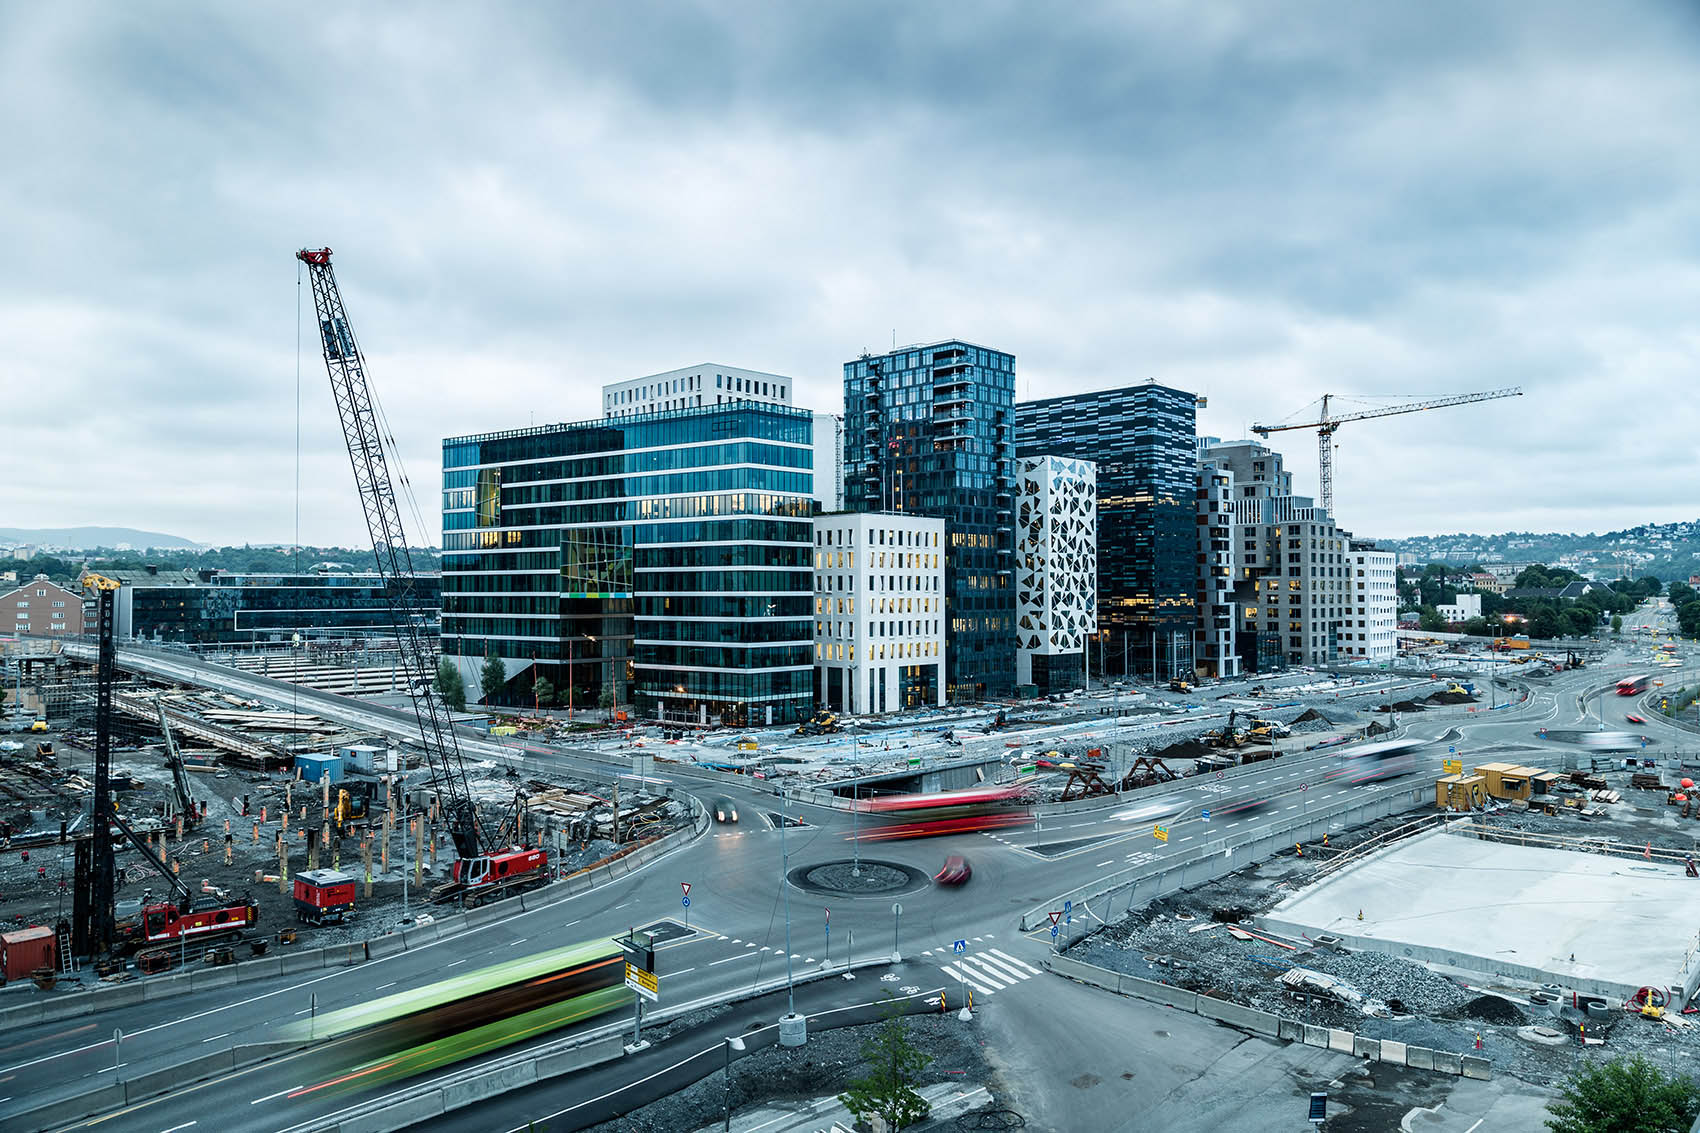 commercial industrial construction of modern cityscape with cranes and traffic in Oslo Norway